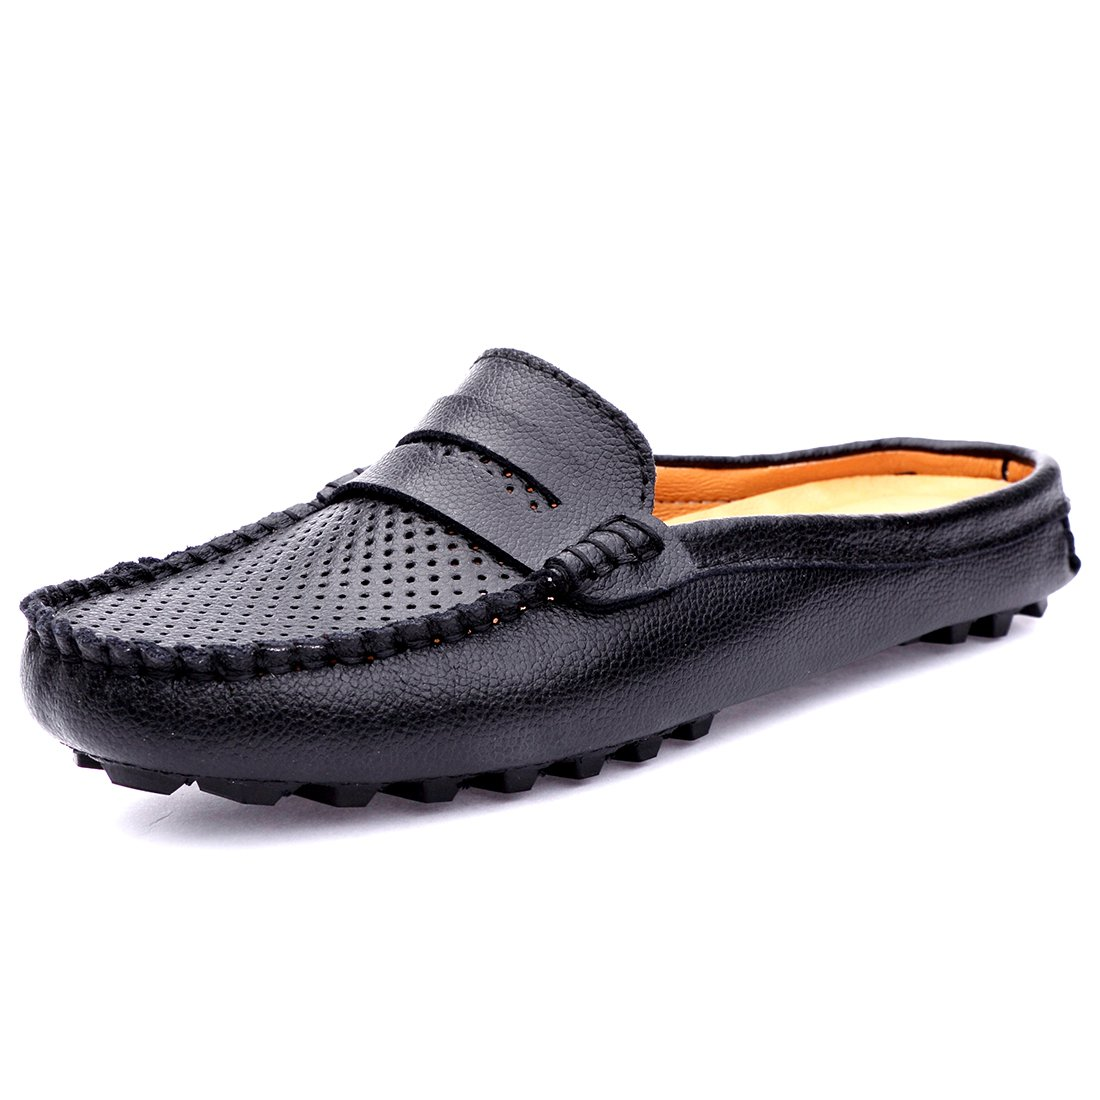 SUNROLAN 20133hei37 Women's Leather Casual Summer Breathable Slip-On Backless Slipper Mule Loafer Flats Shoes Hollow Out